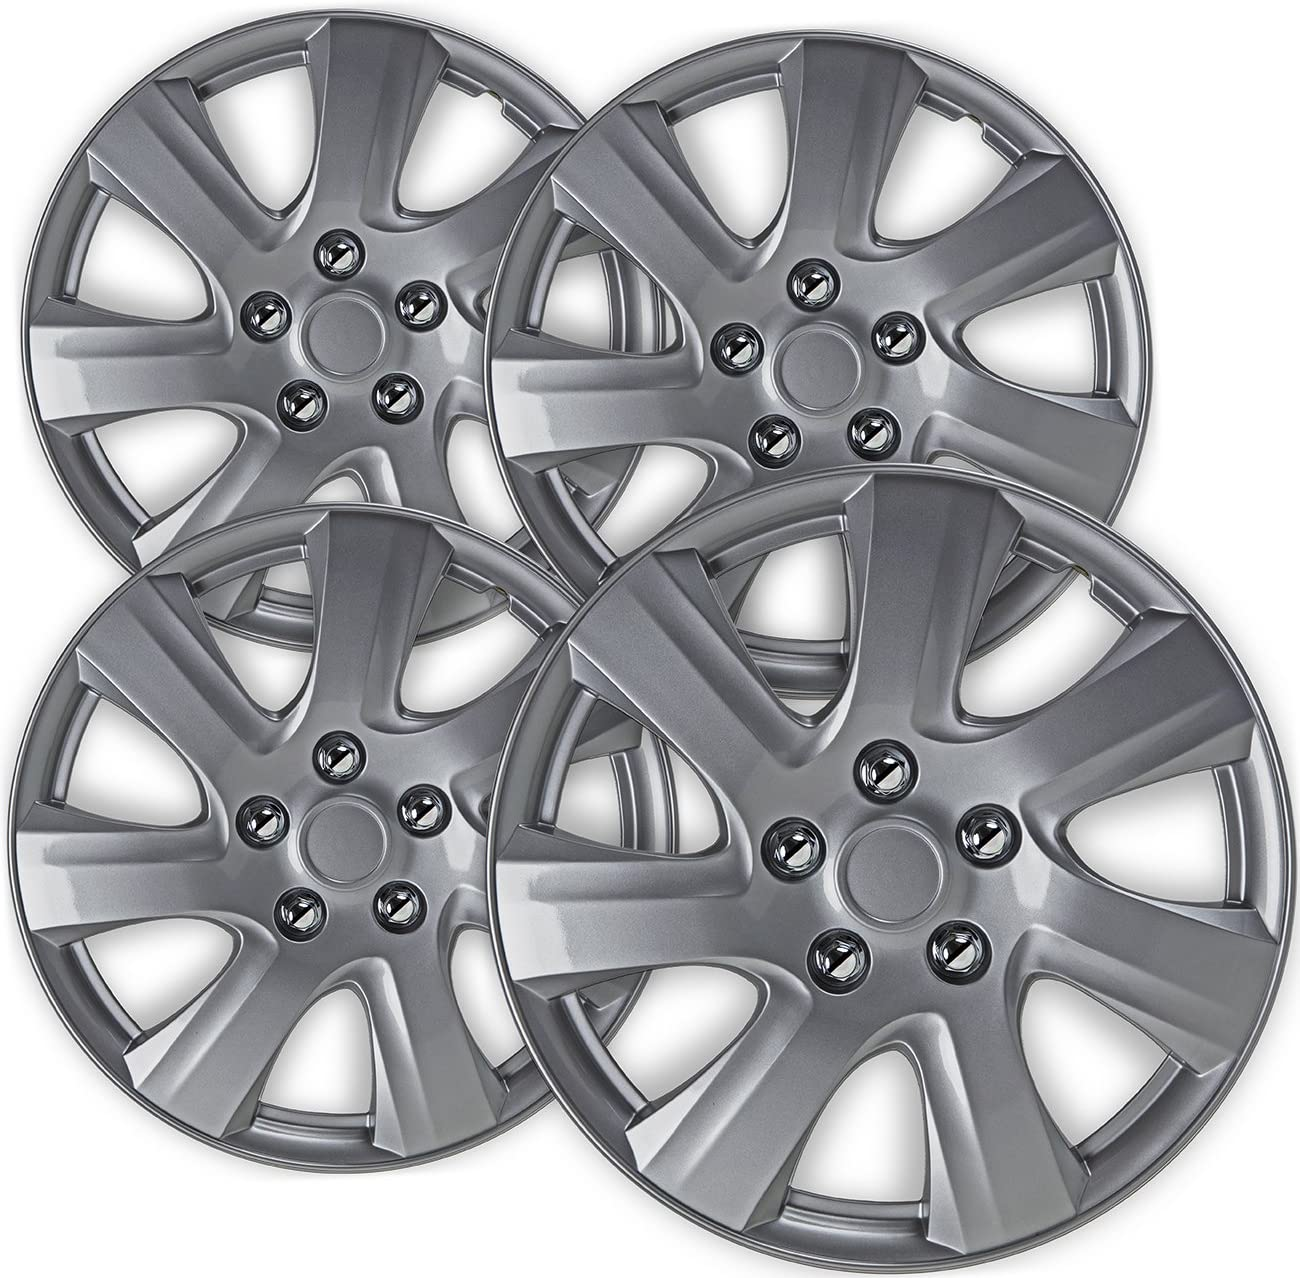 16 inch Hubcaps Best for 2014-2016 Mazda 4 Online limited product Co of Set - 3 Wheel 70% OFF Outlet